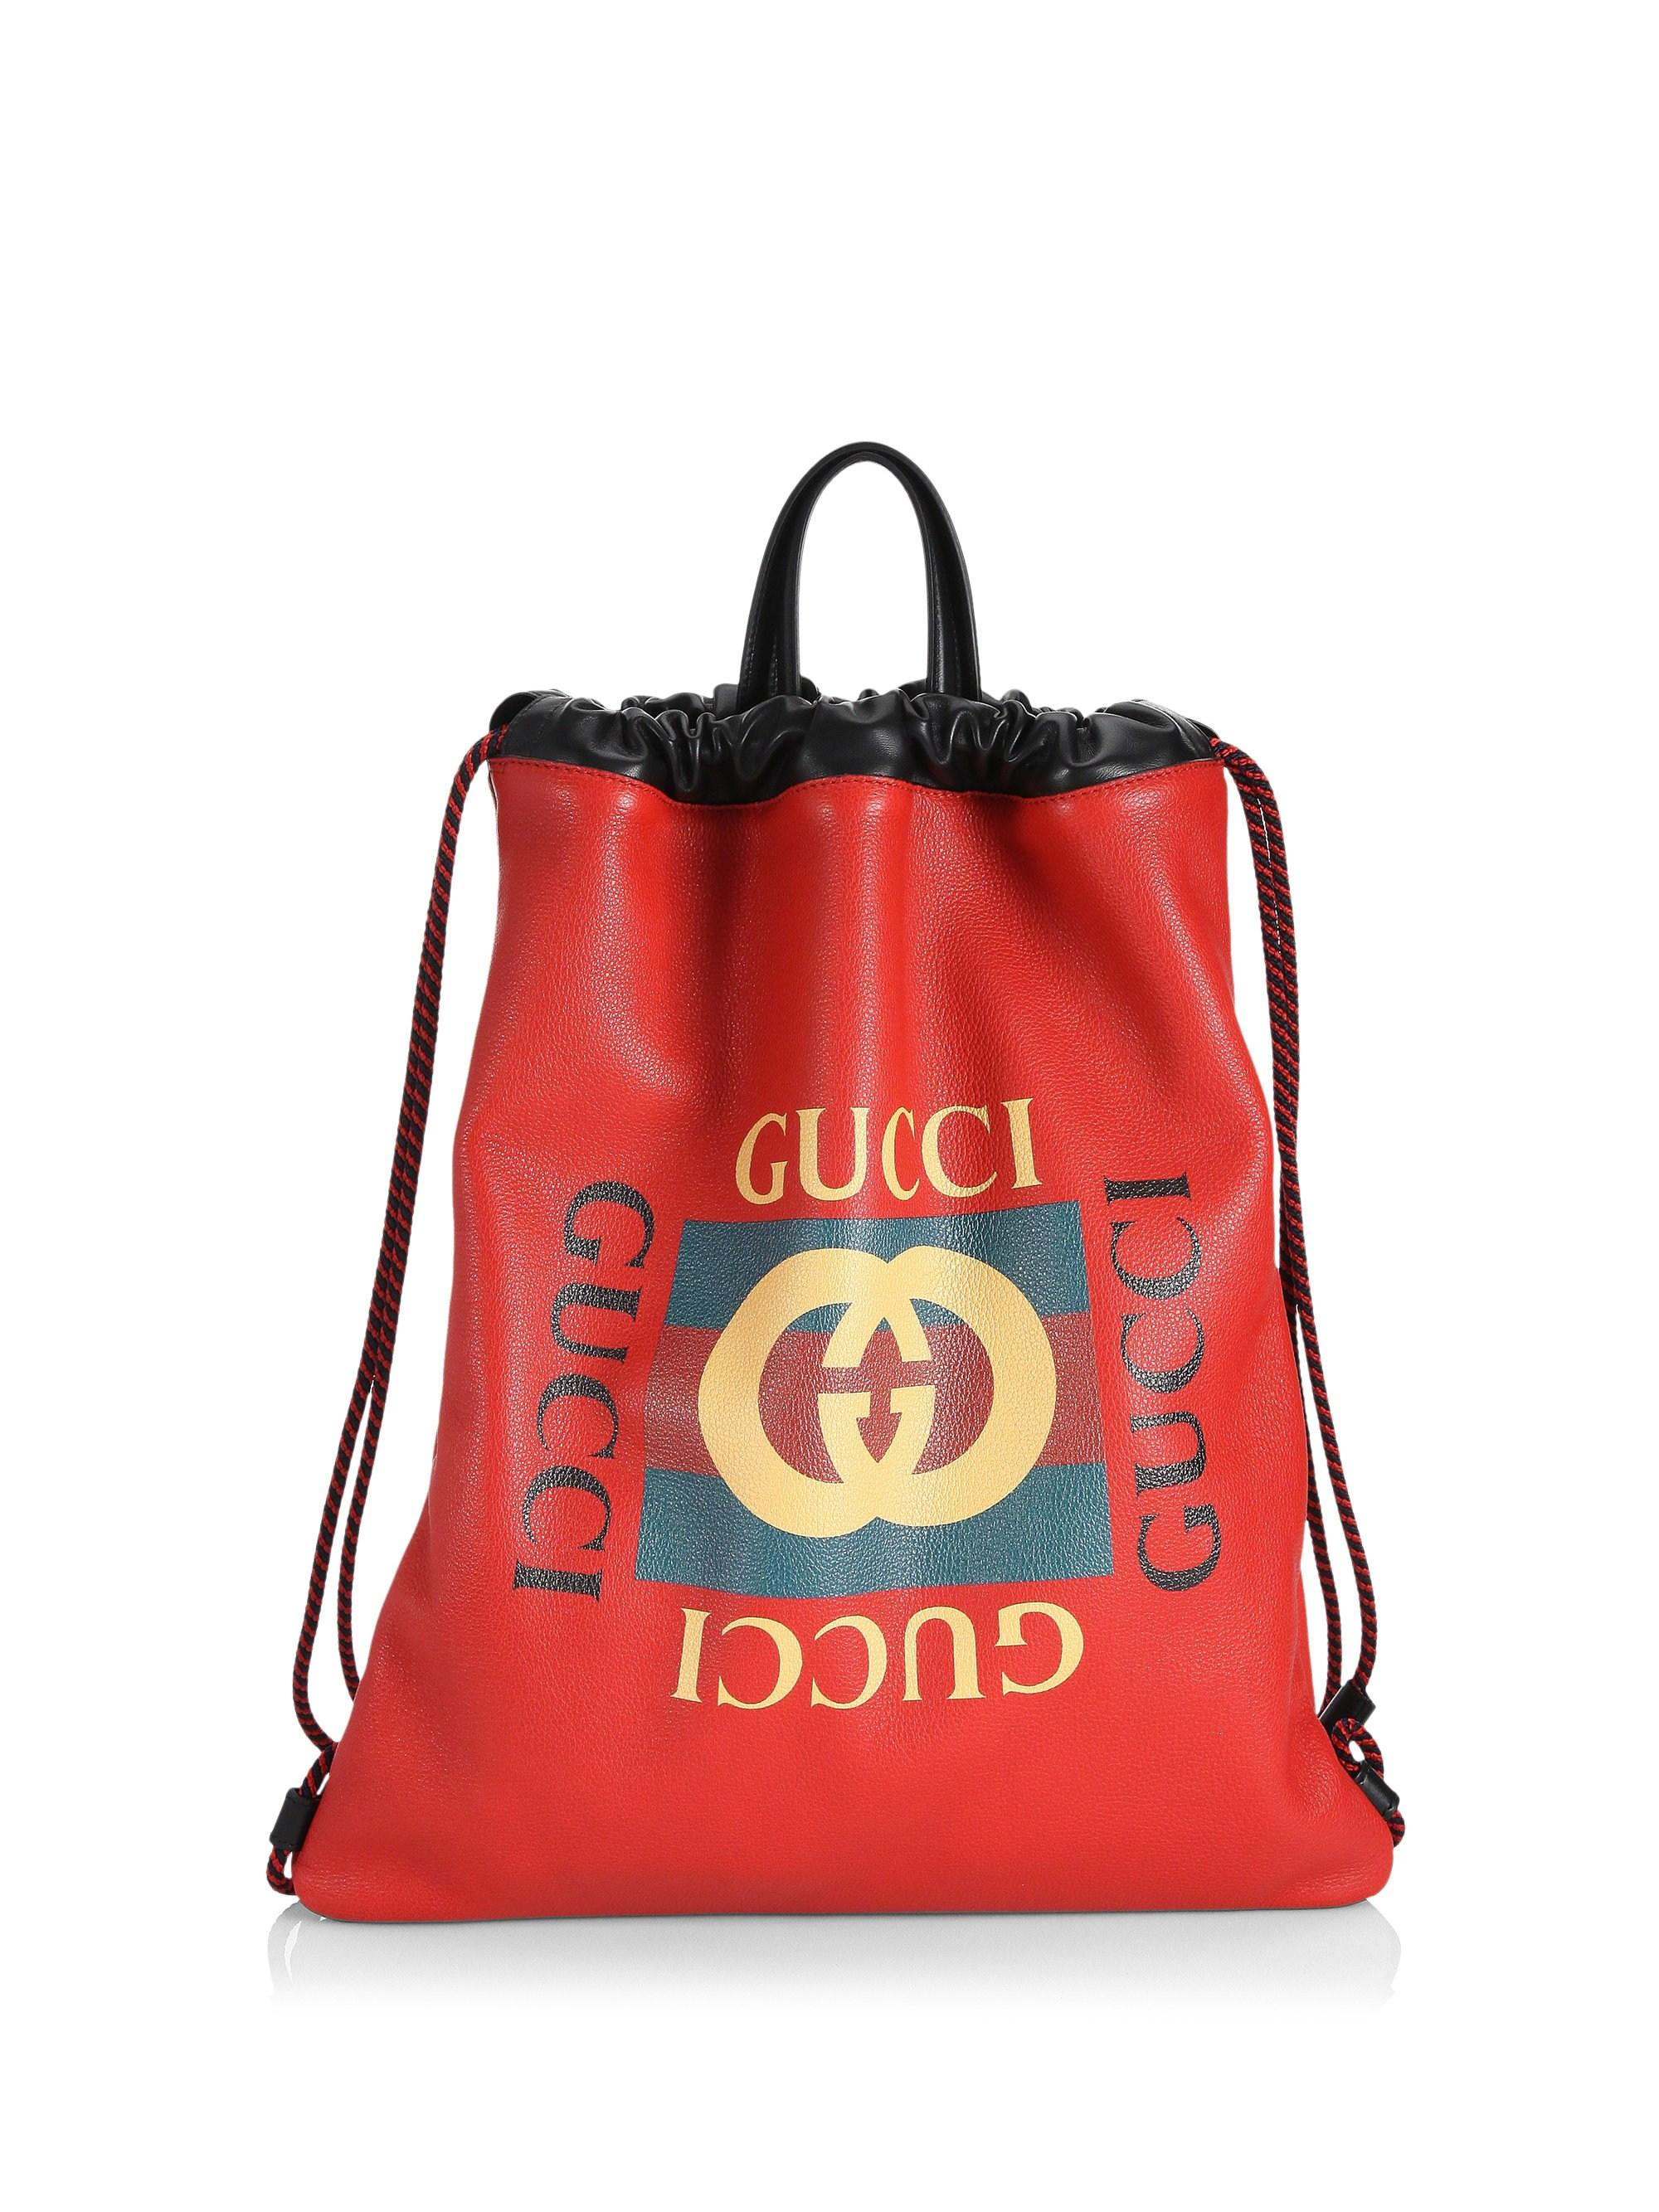 ed8738a9a206 Gucci Logo Leather Drawstring Backpack in Red for Men - Lyst